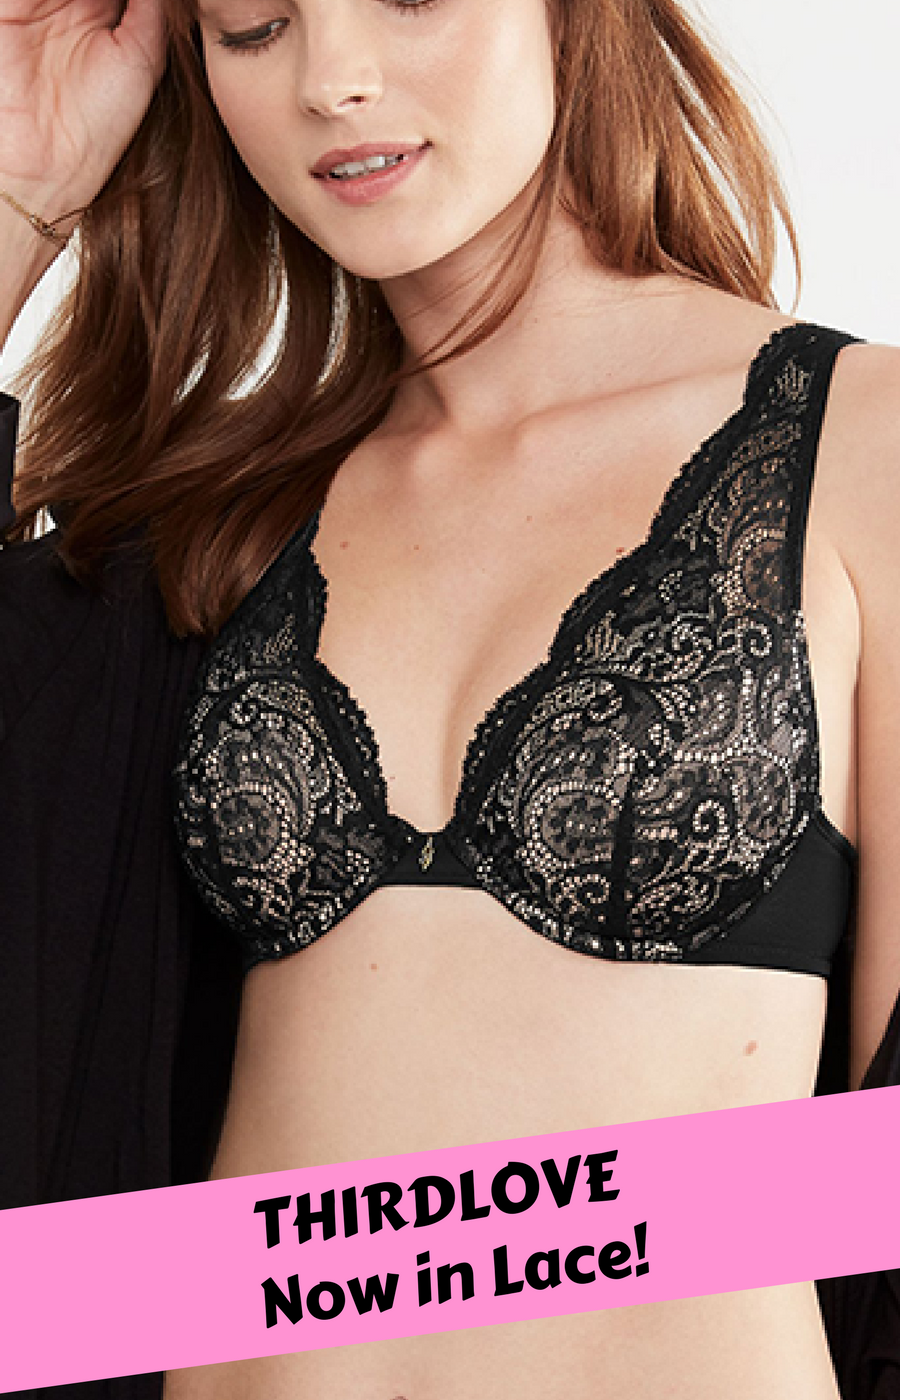 a001b431cec9e Thirdlove is THE BEST BRA out there! I m so excited to see a lace ...